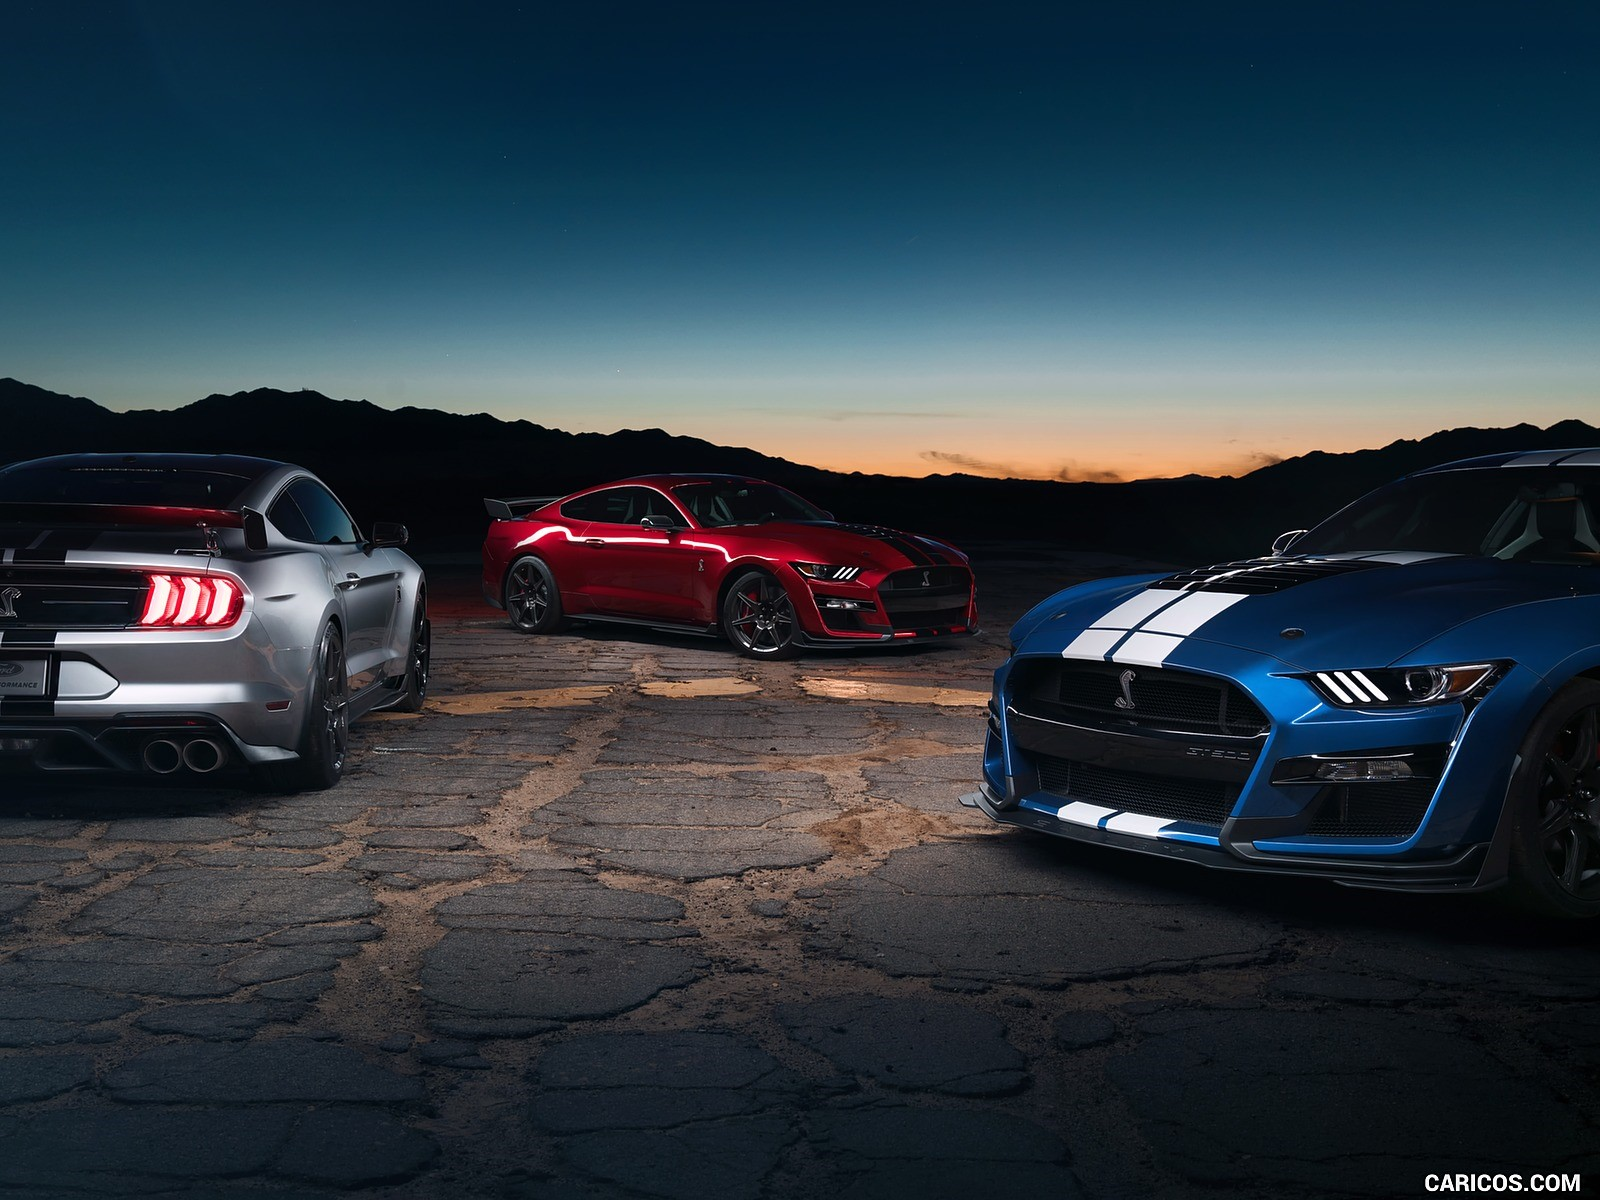 Ford Mustang Shelby uhd wallpapers 1